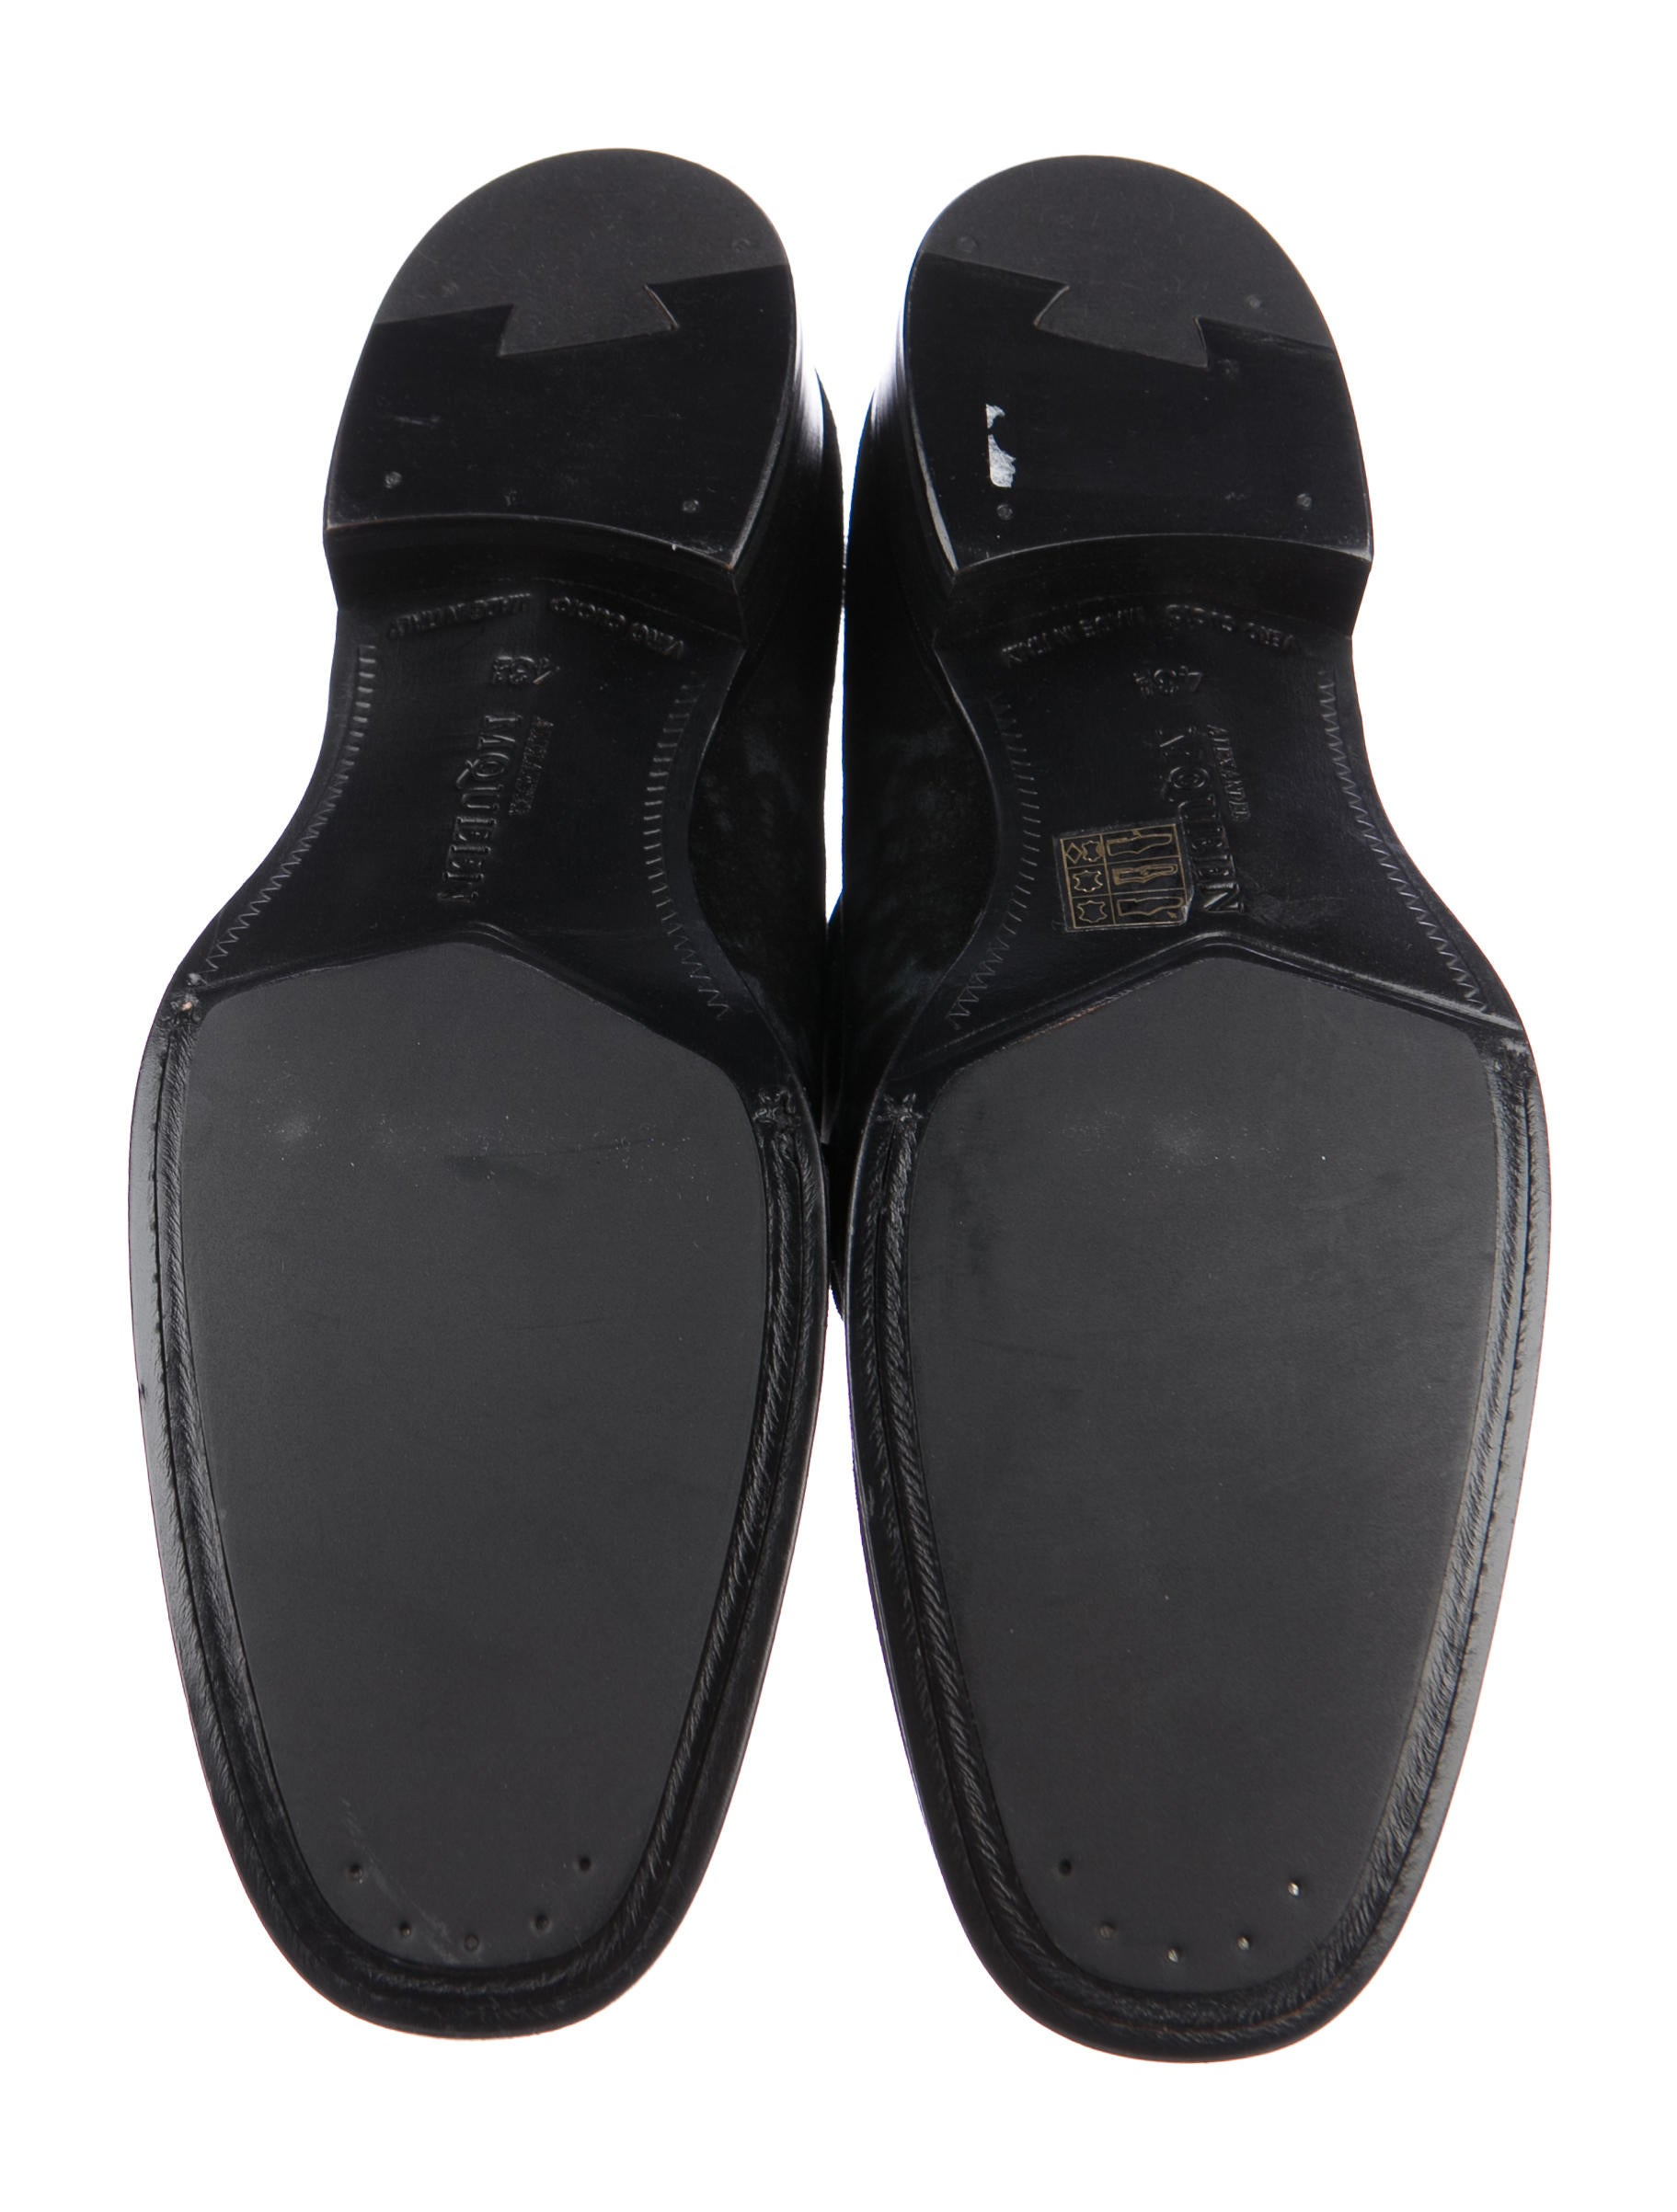 Can Suede Shoes Be Dyed Black